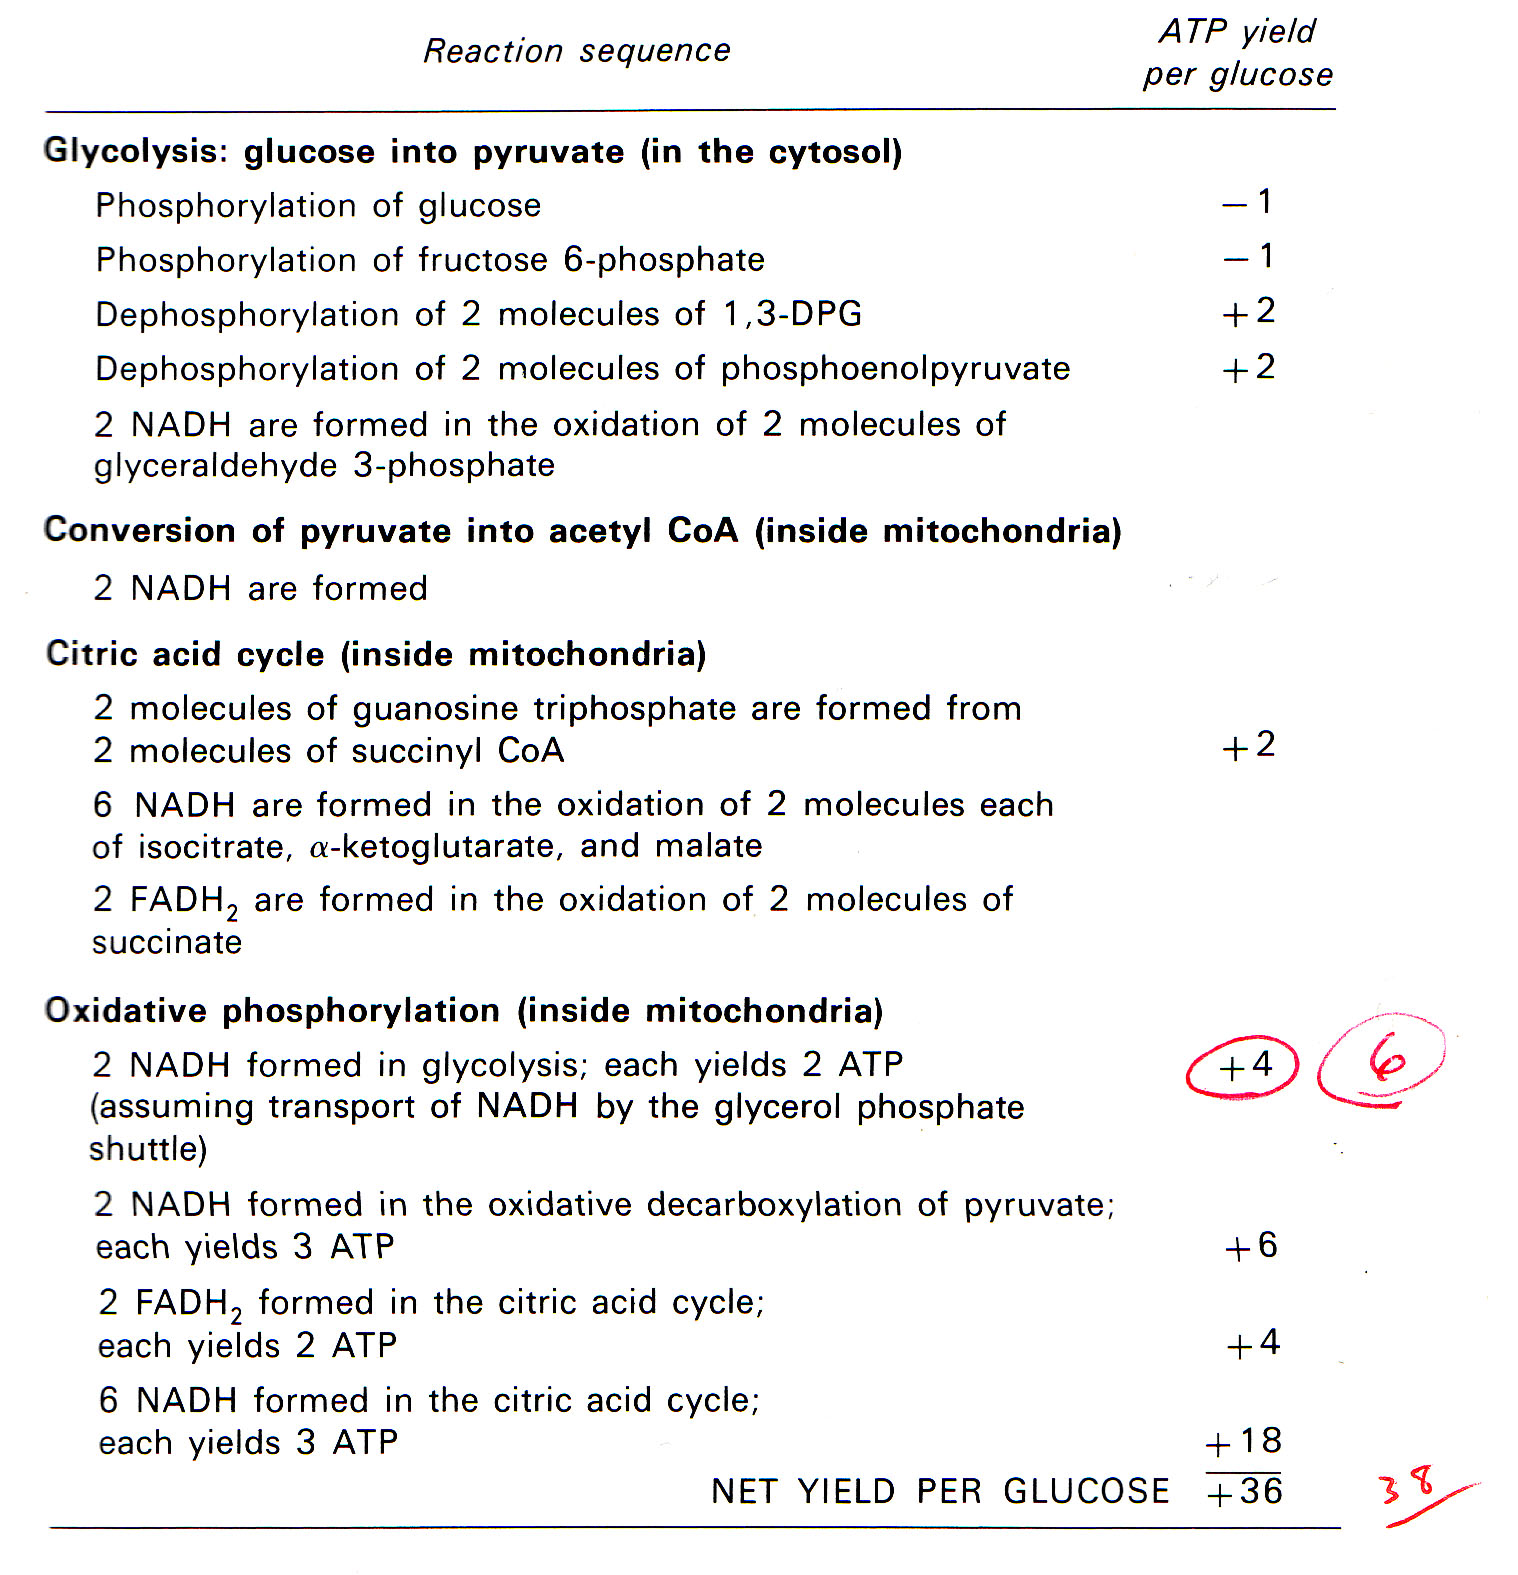 nelson biology units 1 and 2 how to download pdf